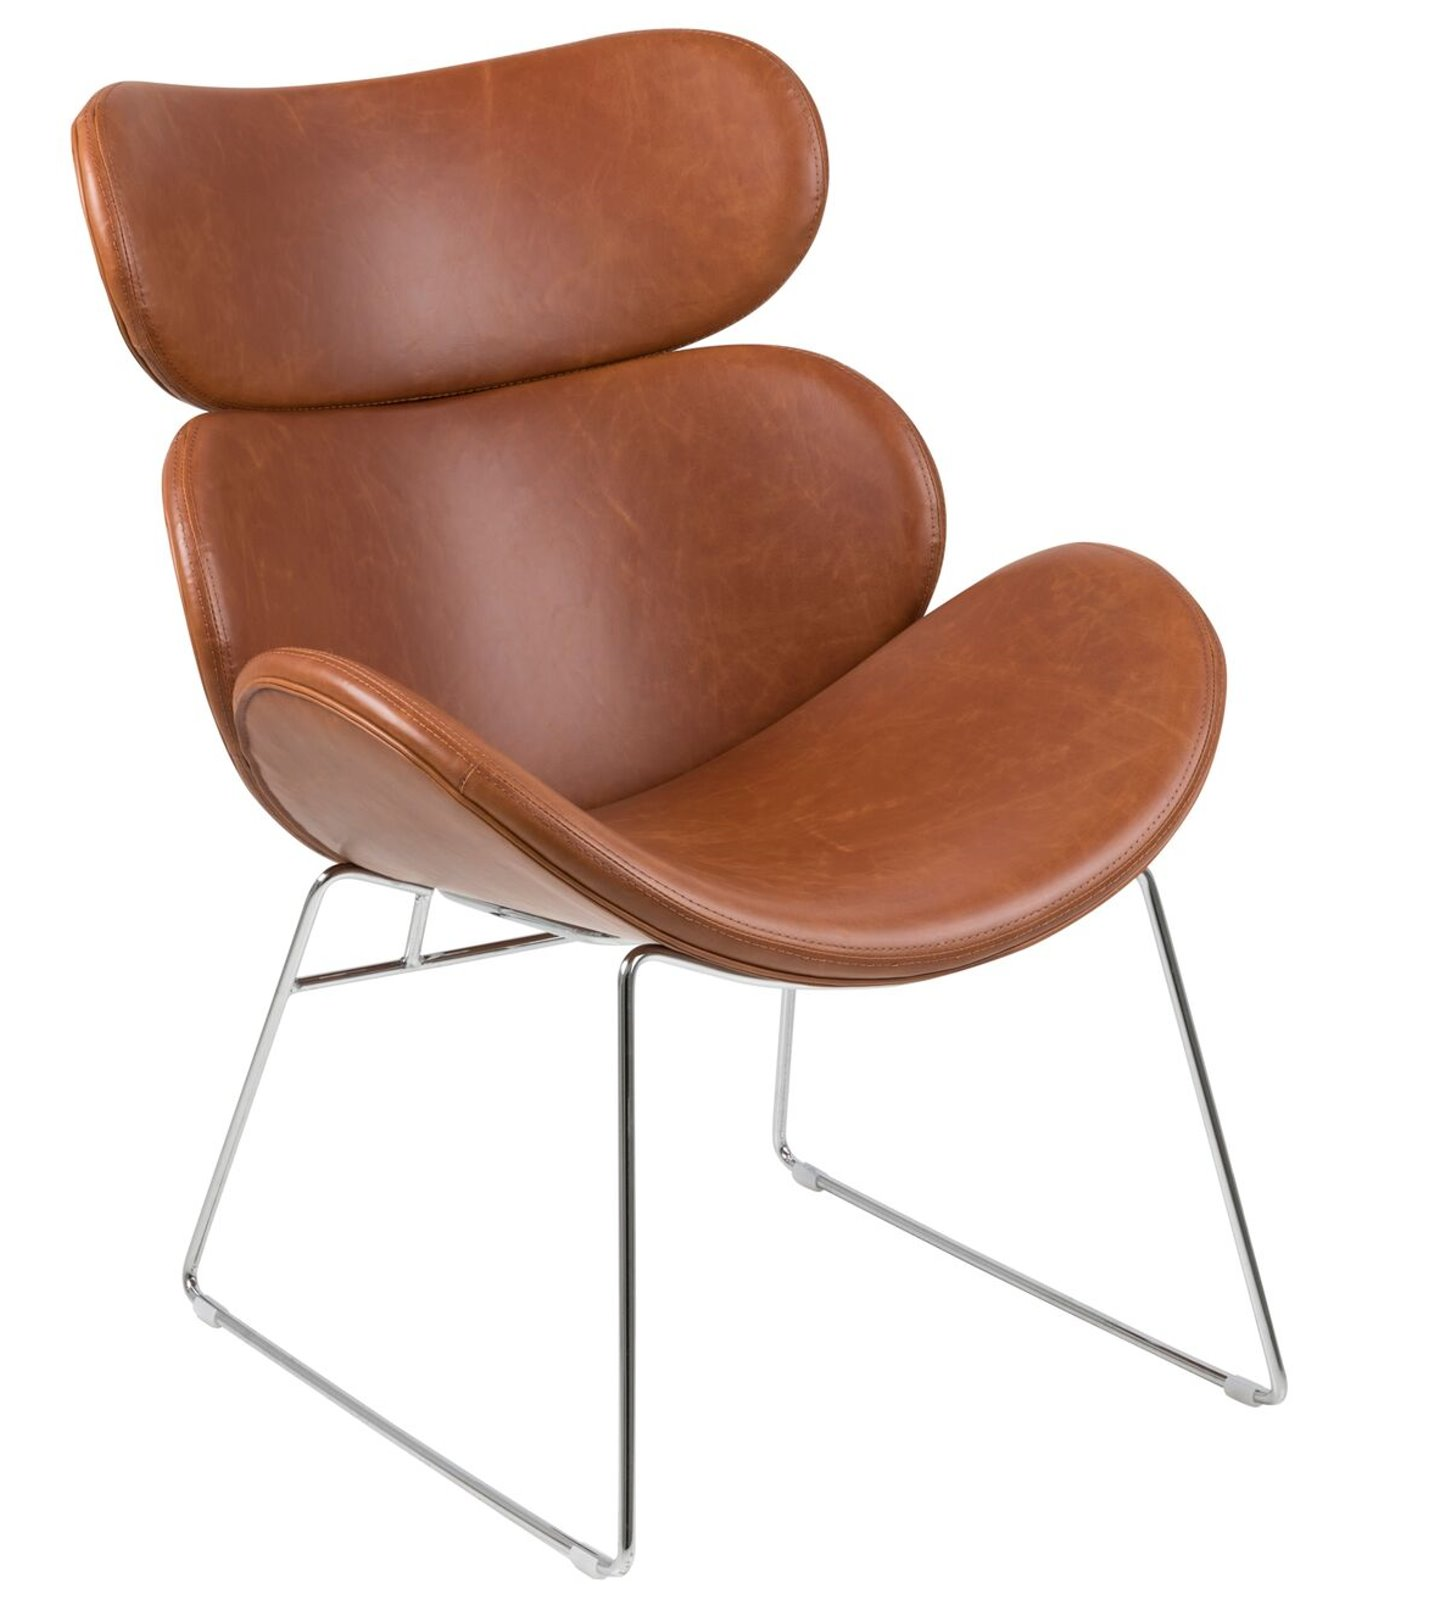 Cognac Sessel Pkline Sessel Cazy In Vintage Cognac Relaxsessel Loungesessel Fernsehsessel